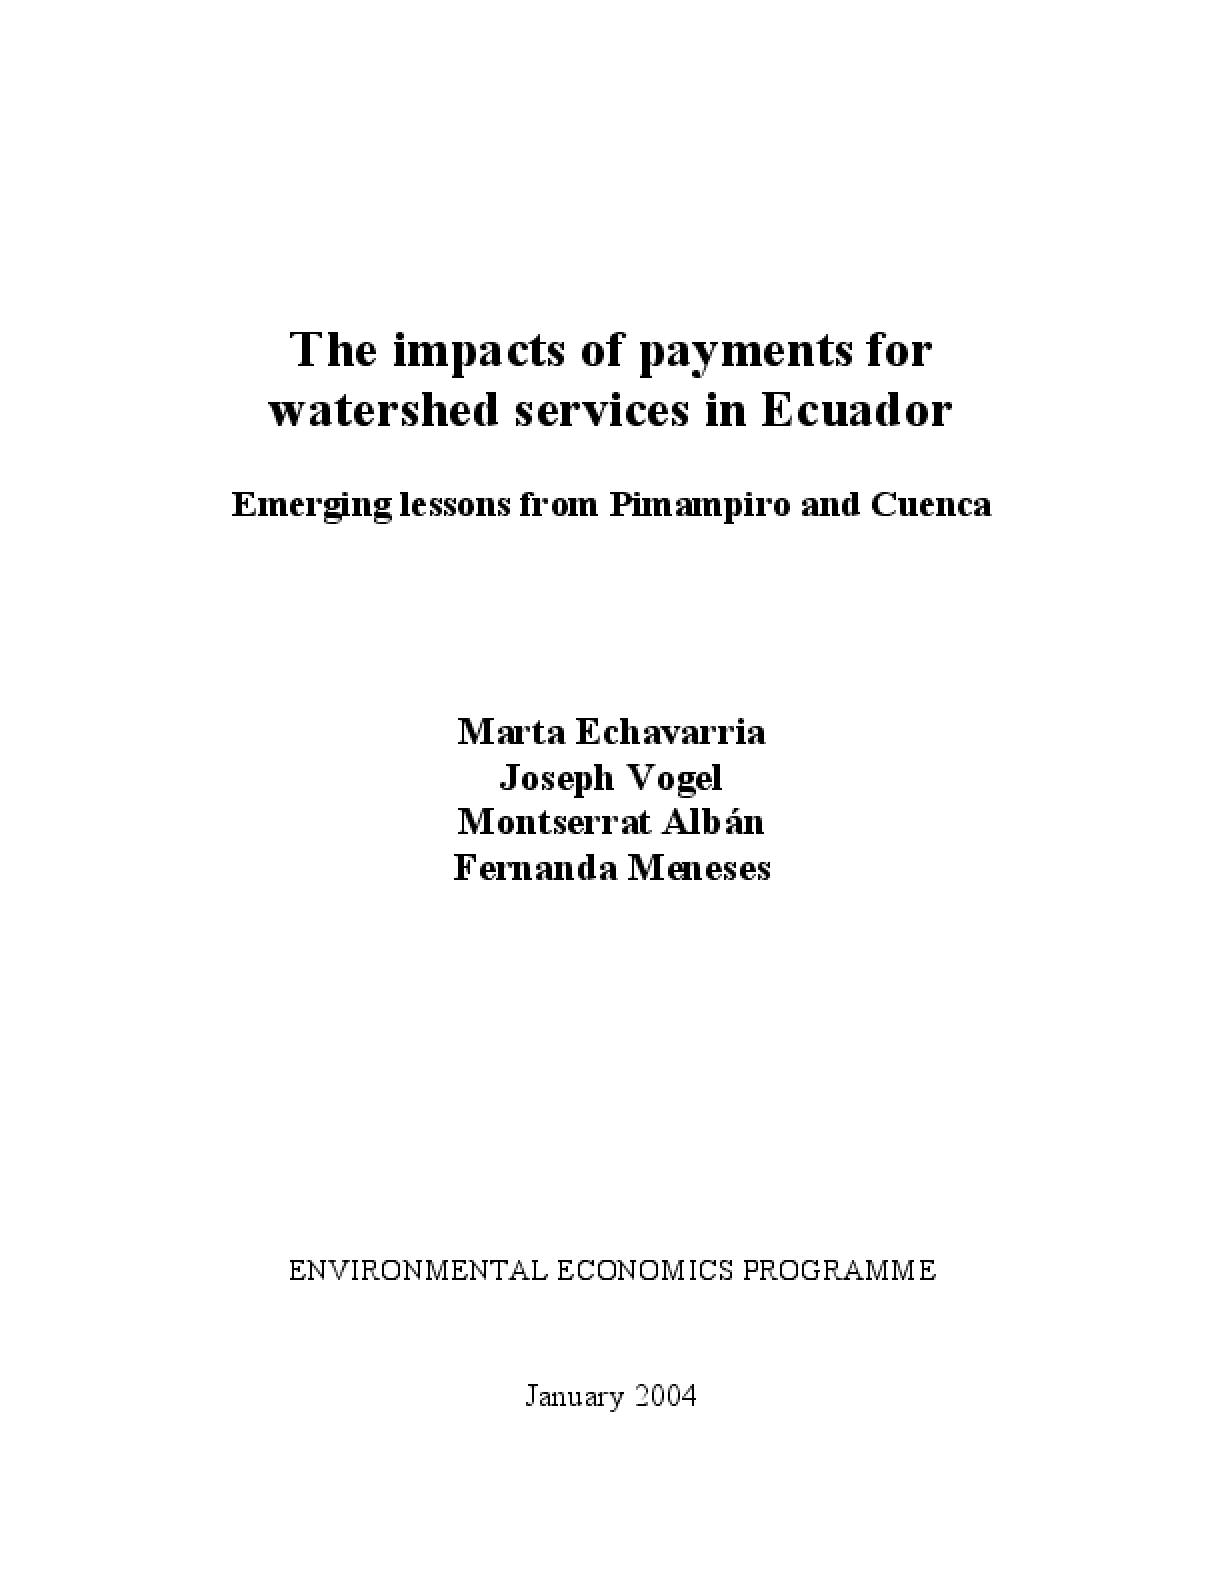 The Impacts of Payments for Watershed Services in Ecuador: Emerging Lessons from Pimampiro and Cuenca